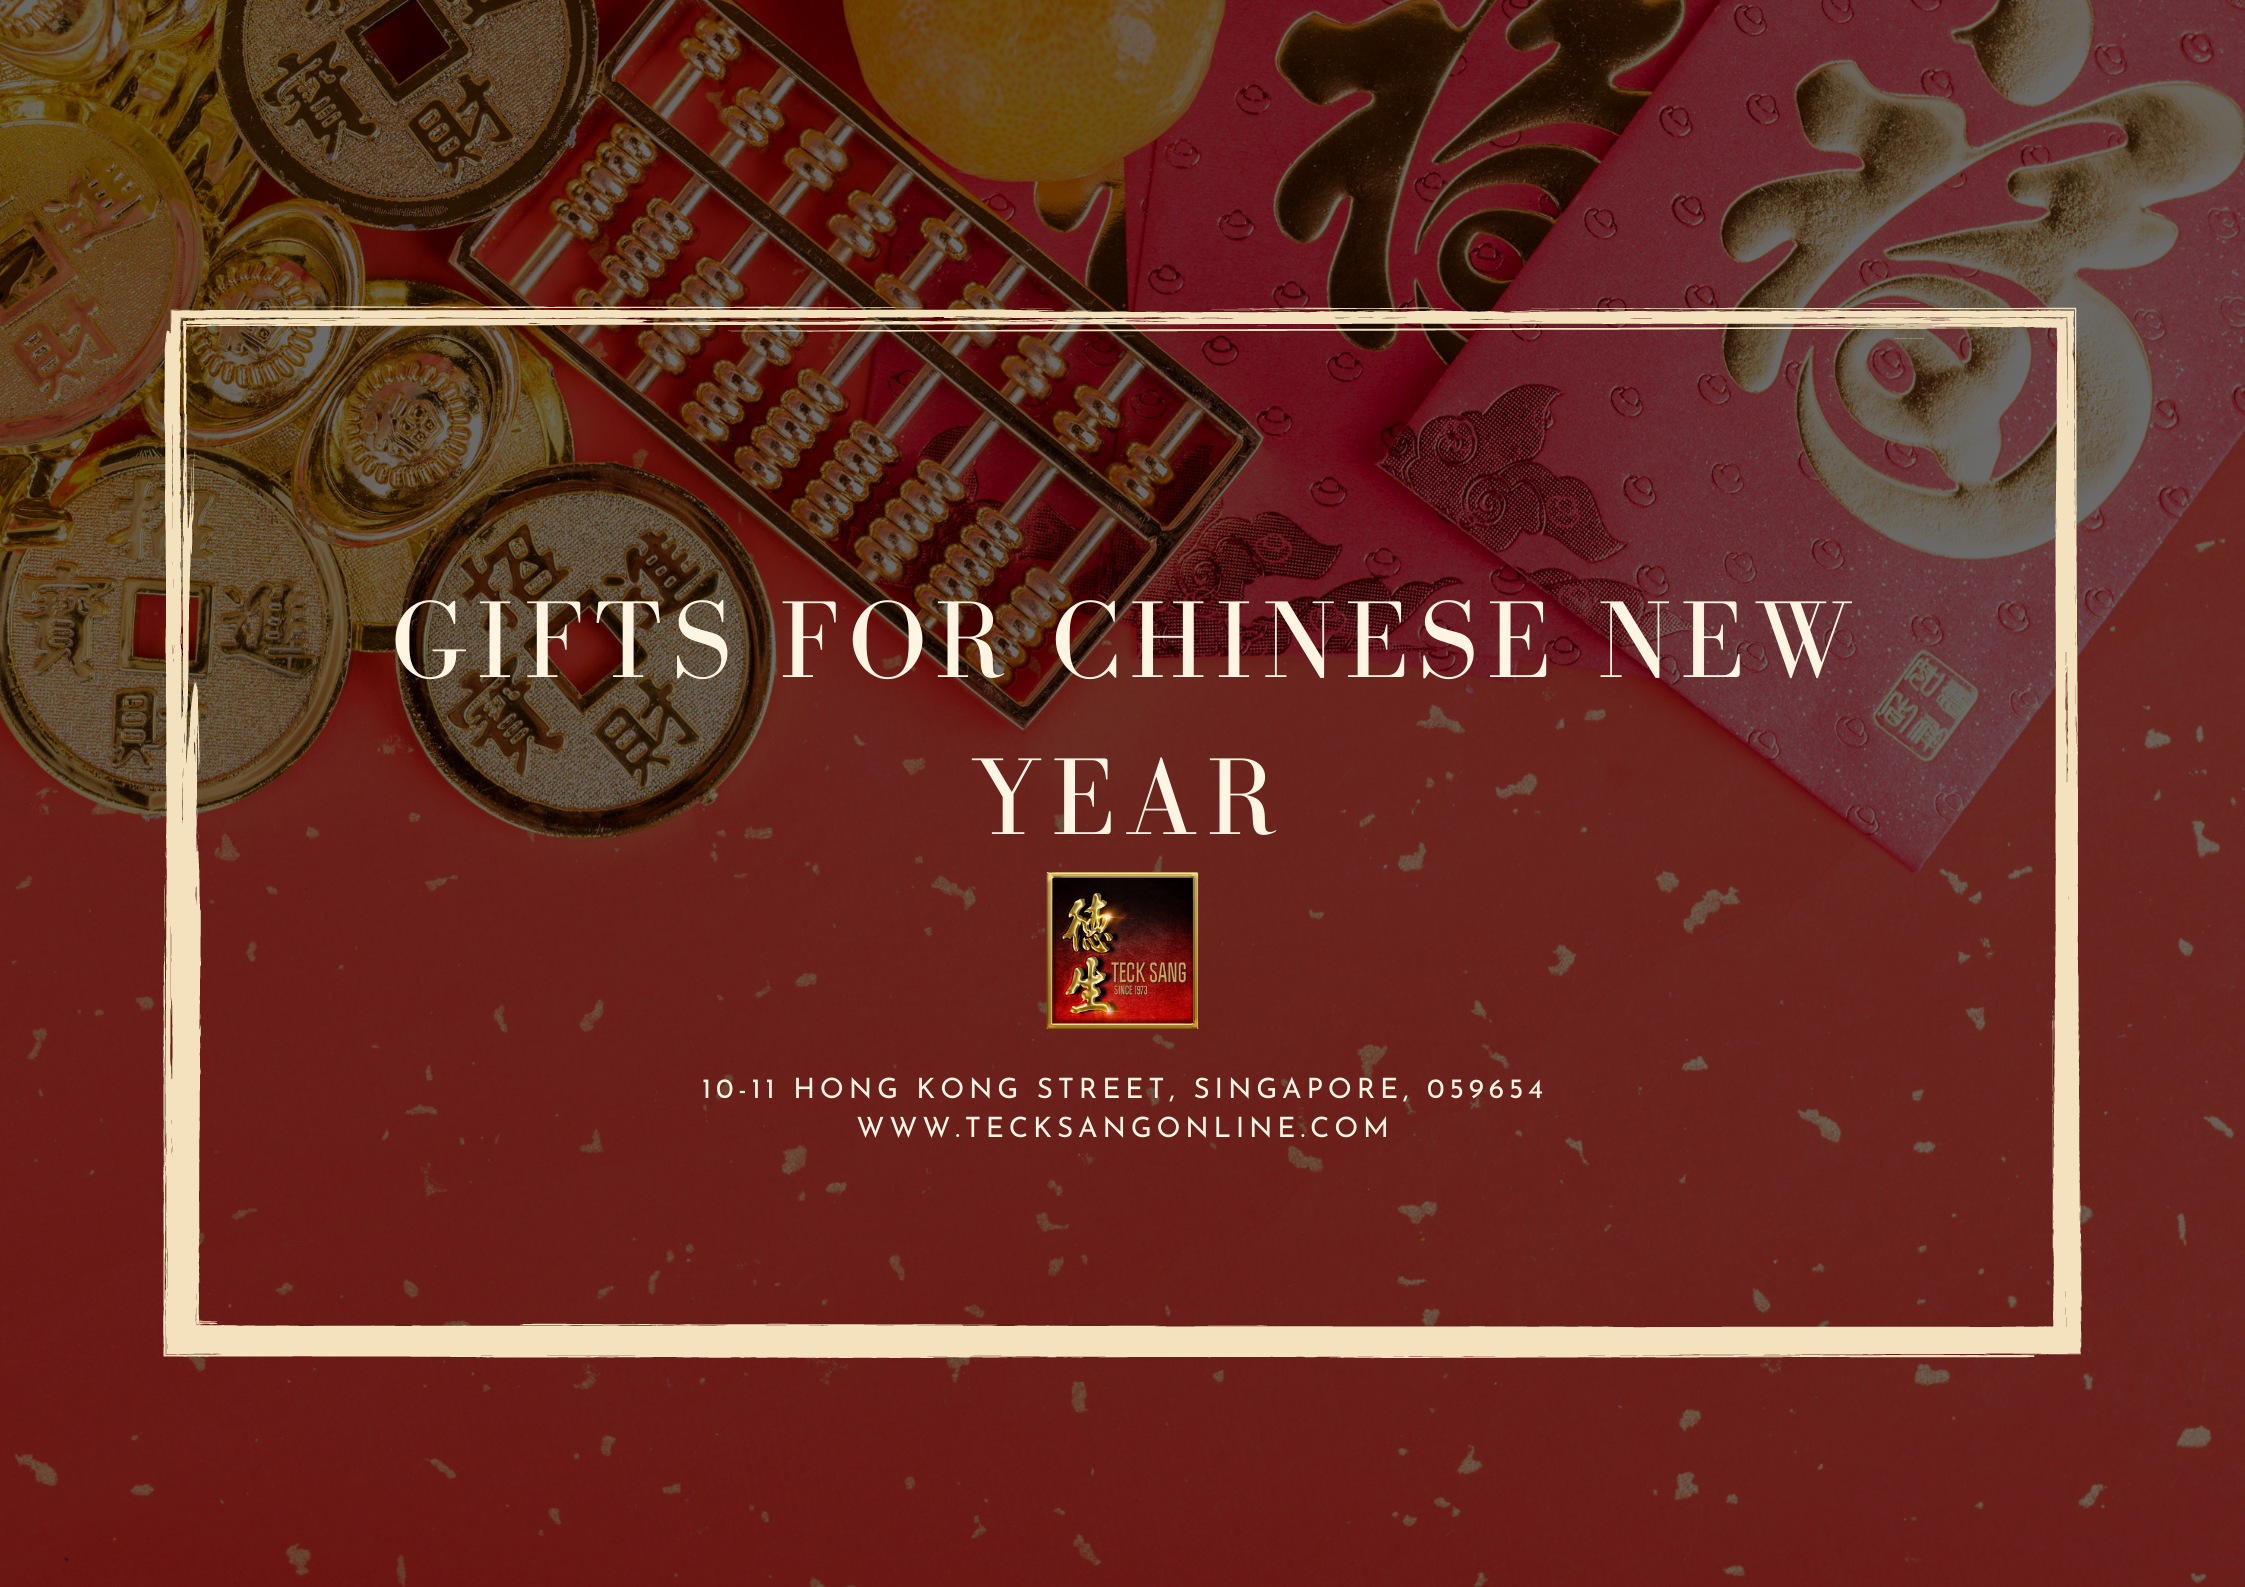 Gifts for Chinese New Year